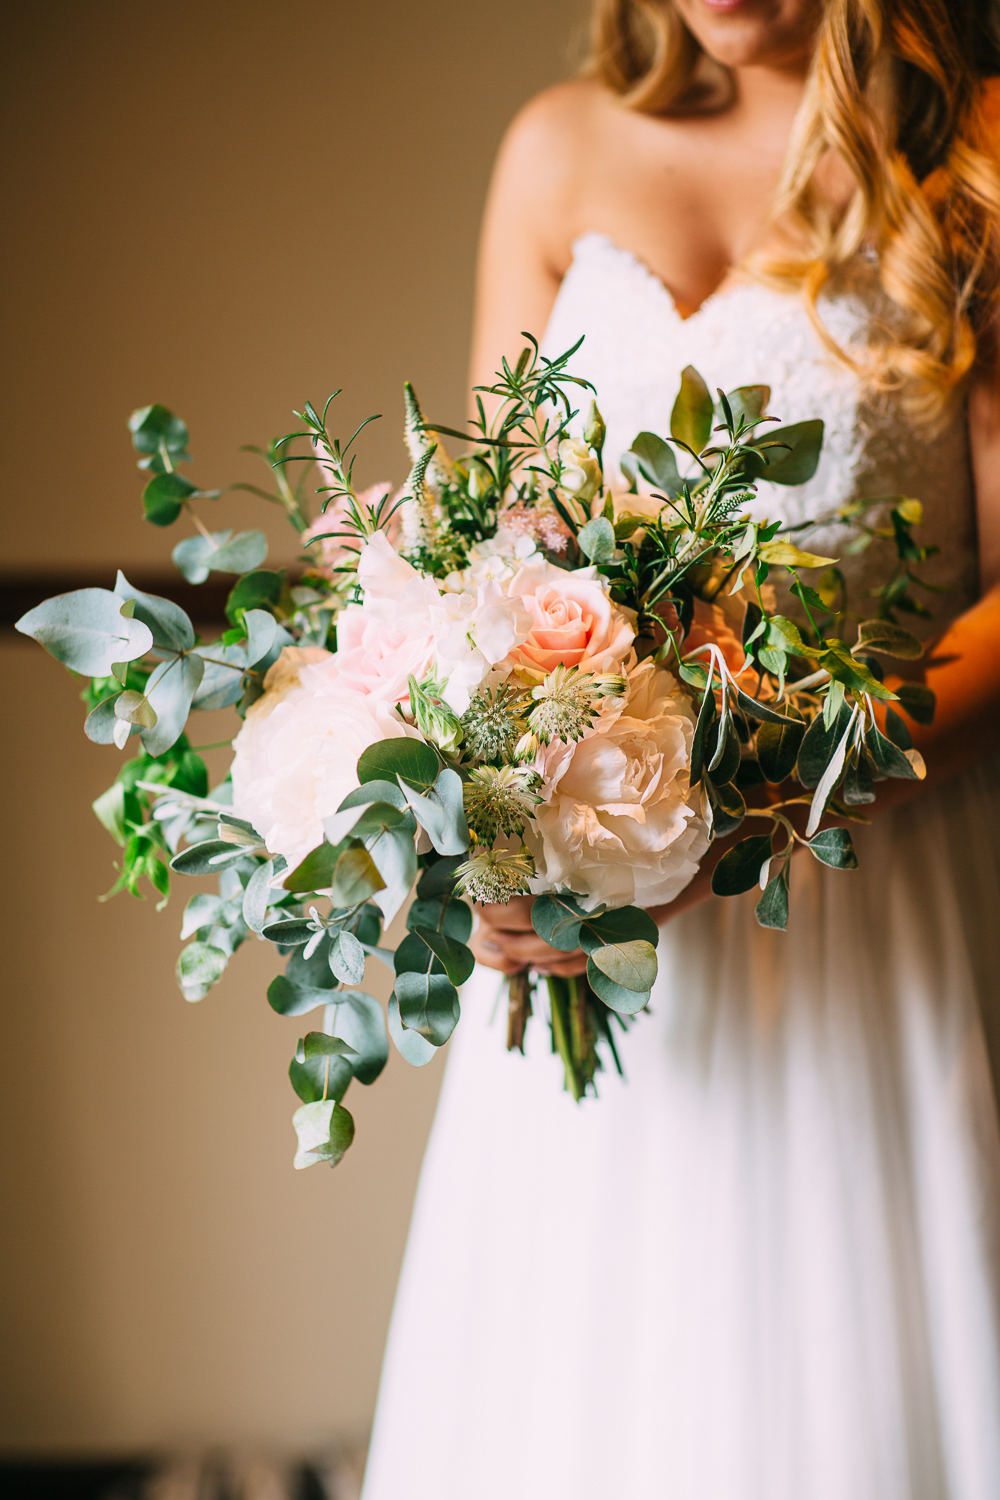 As blush peonies and roses are favorite bride's flowers, they were chosen for her bouquet and florals